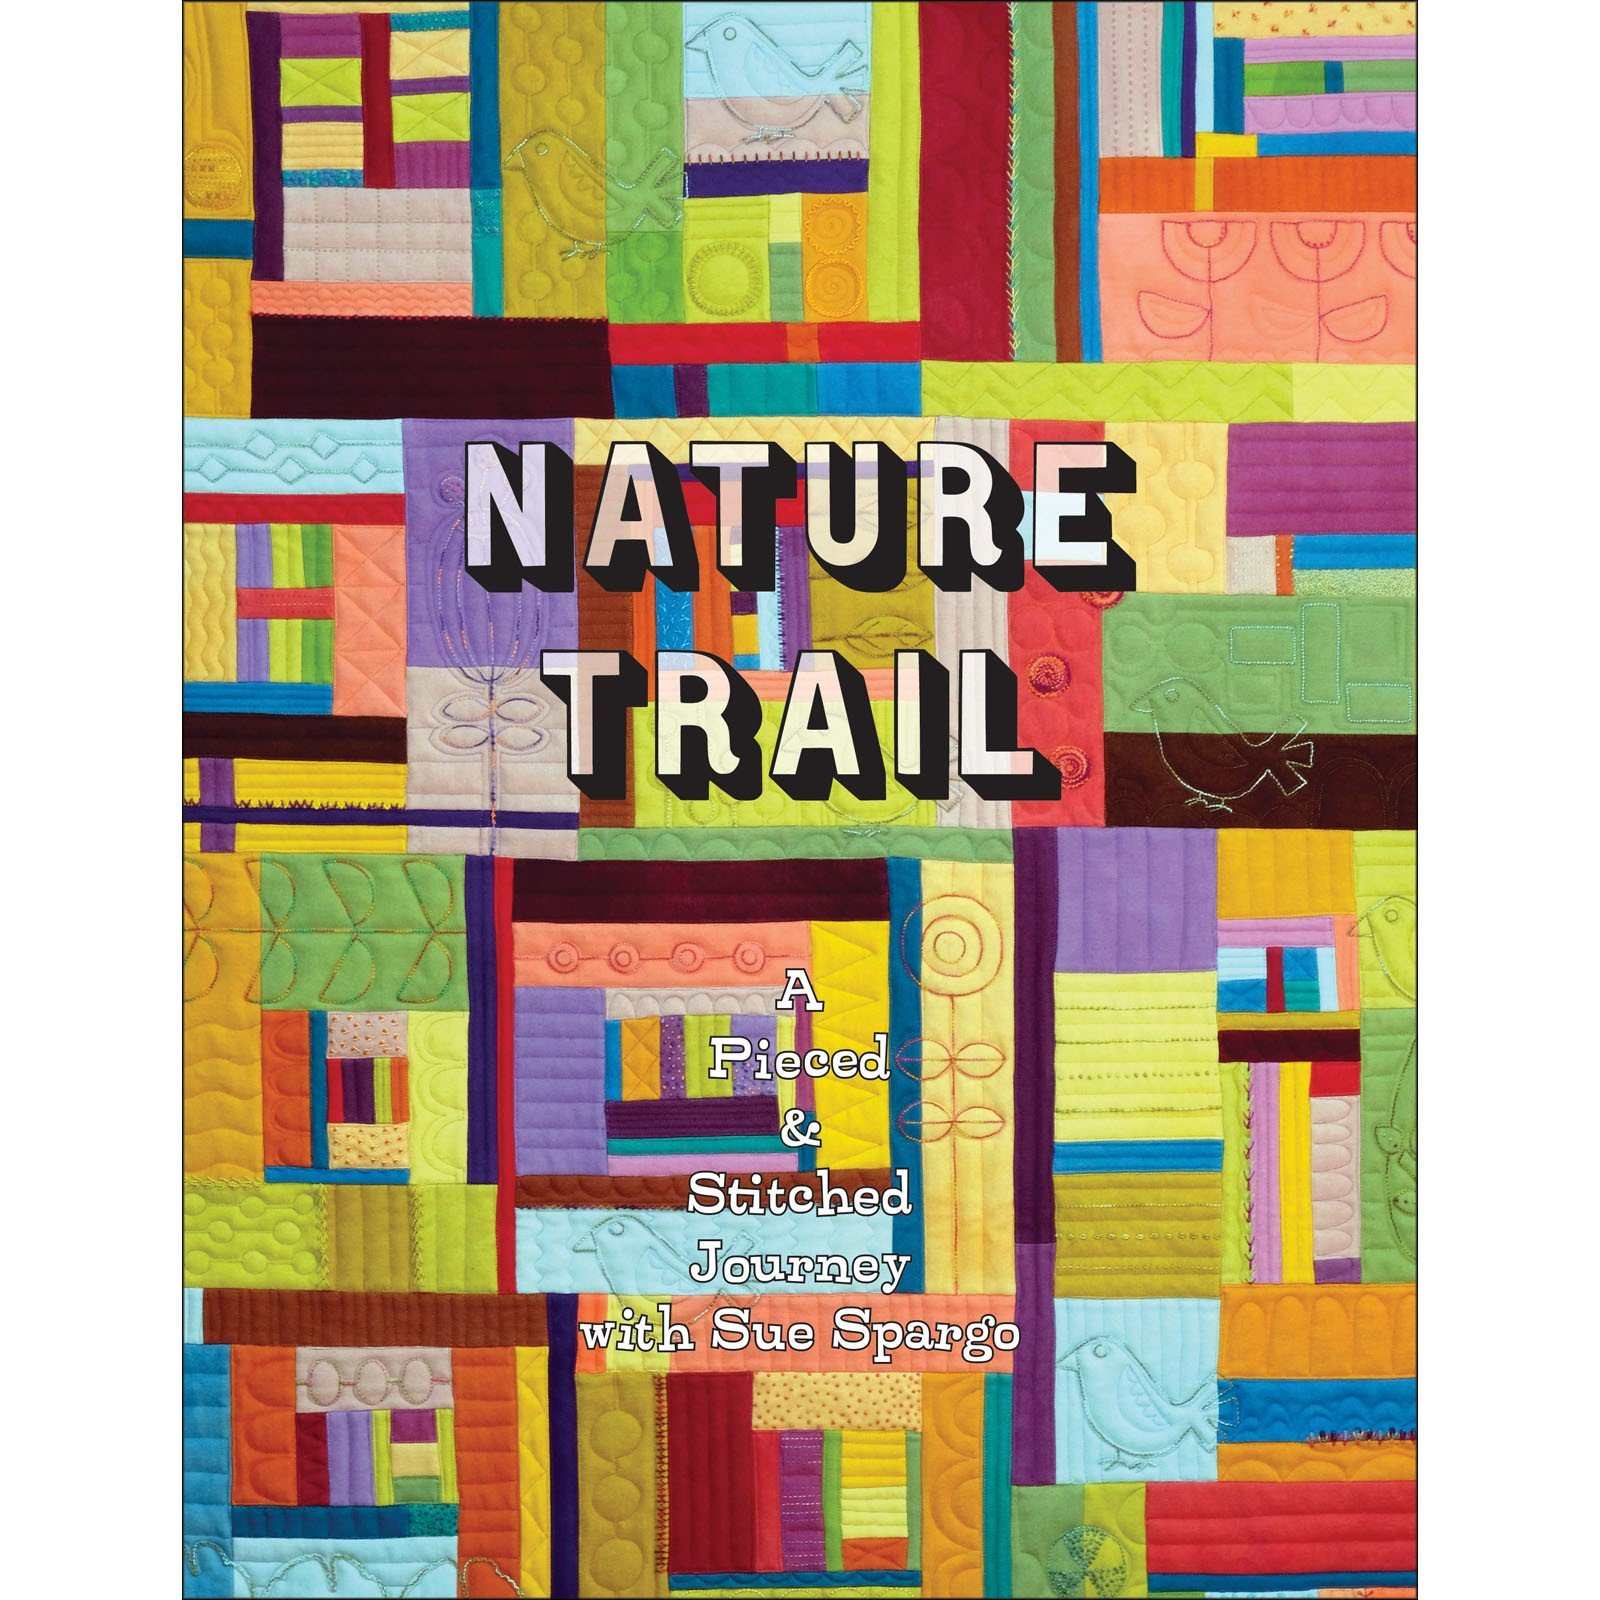 Book. Nature Trail by Sue Spargo